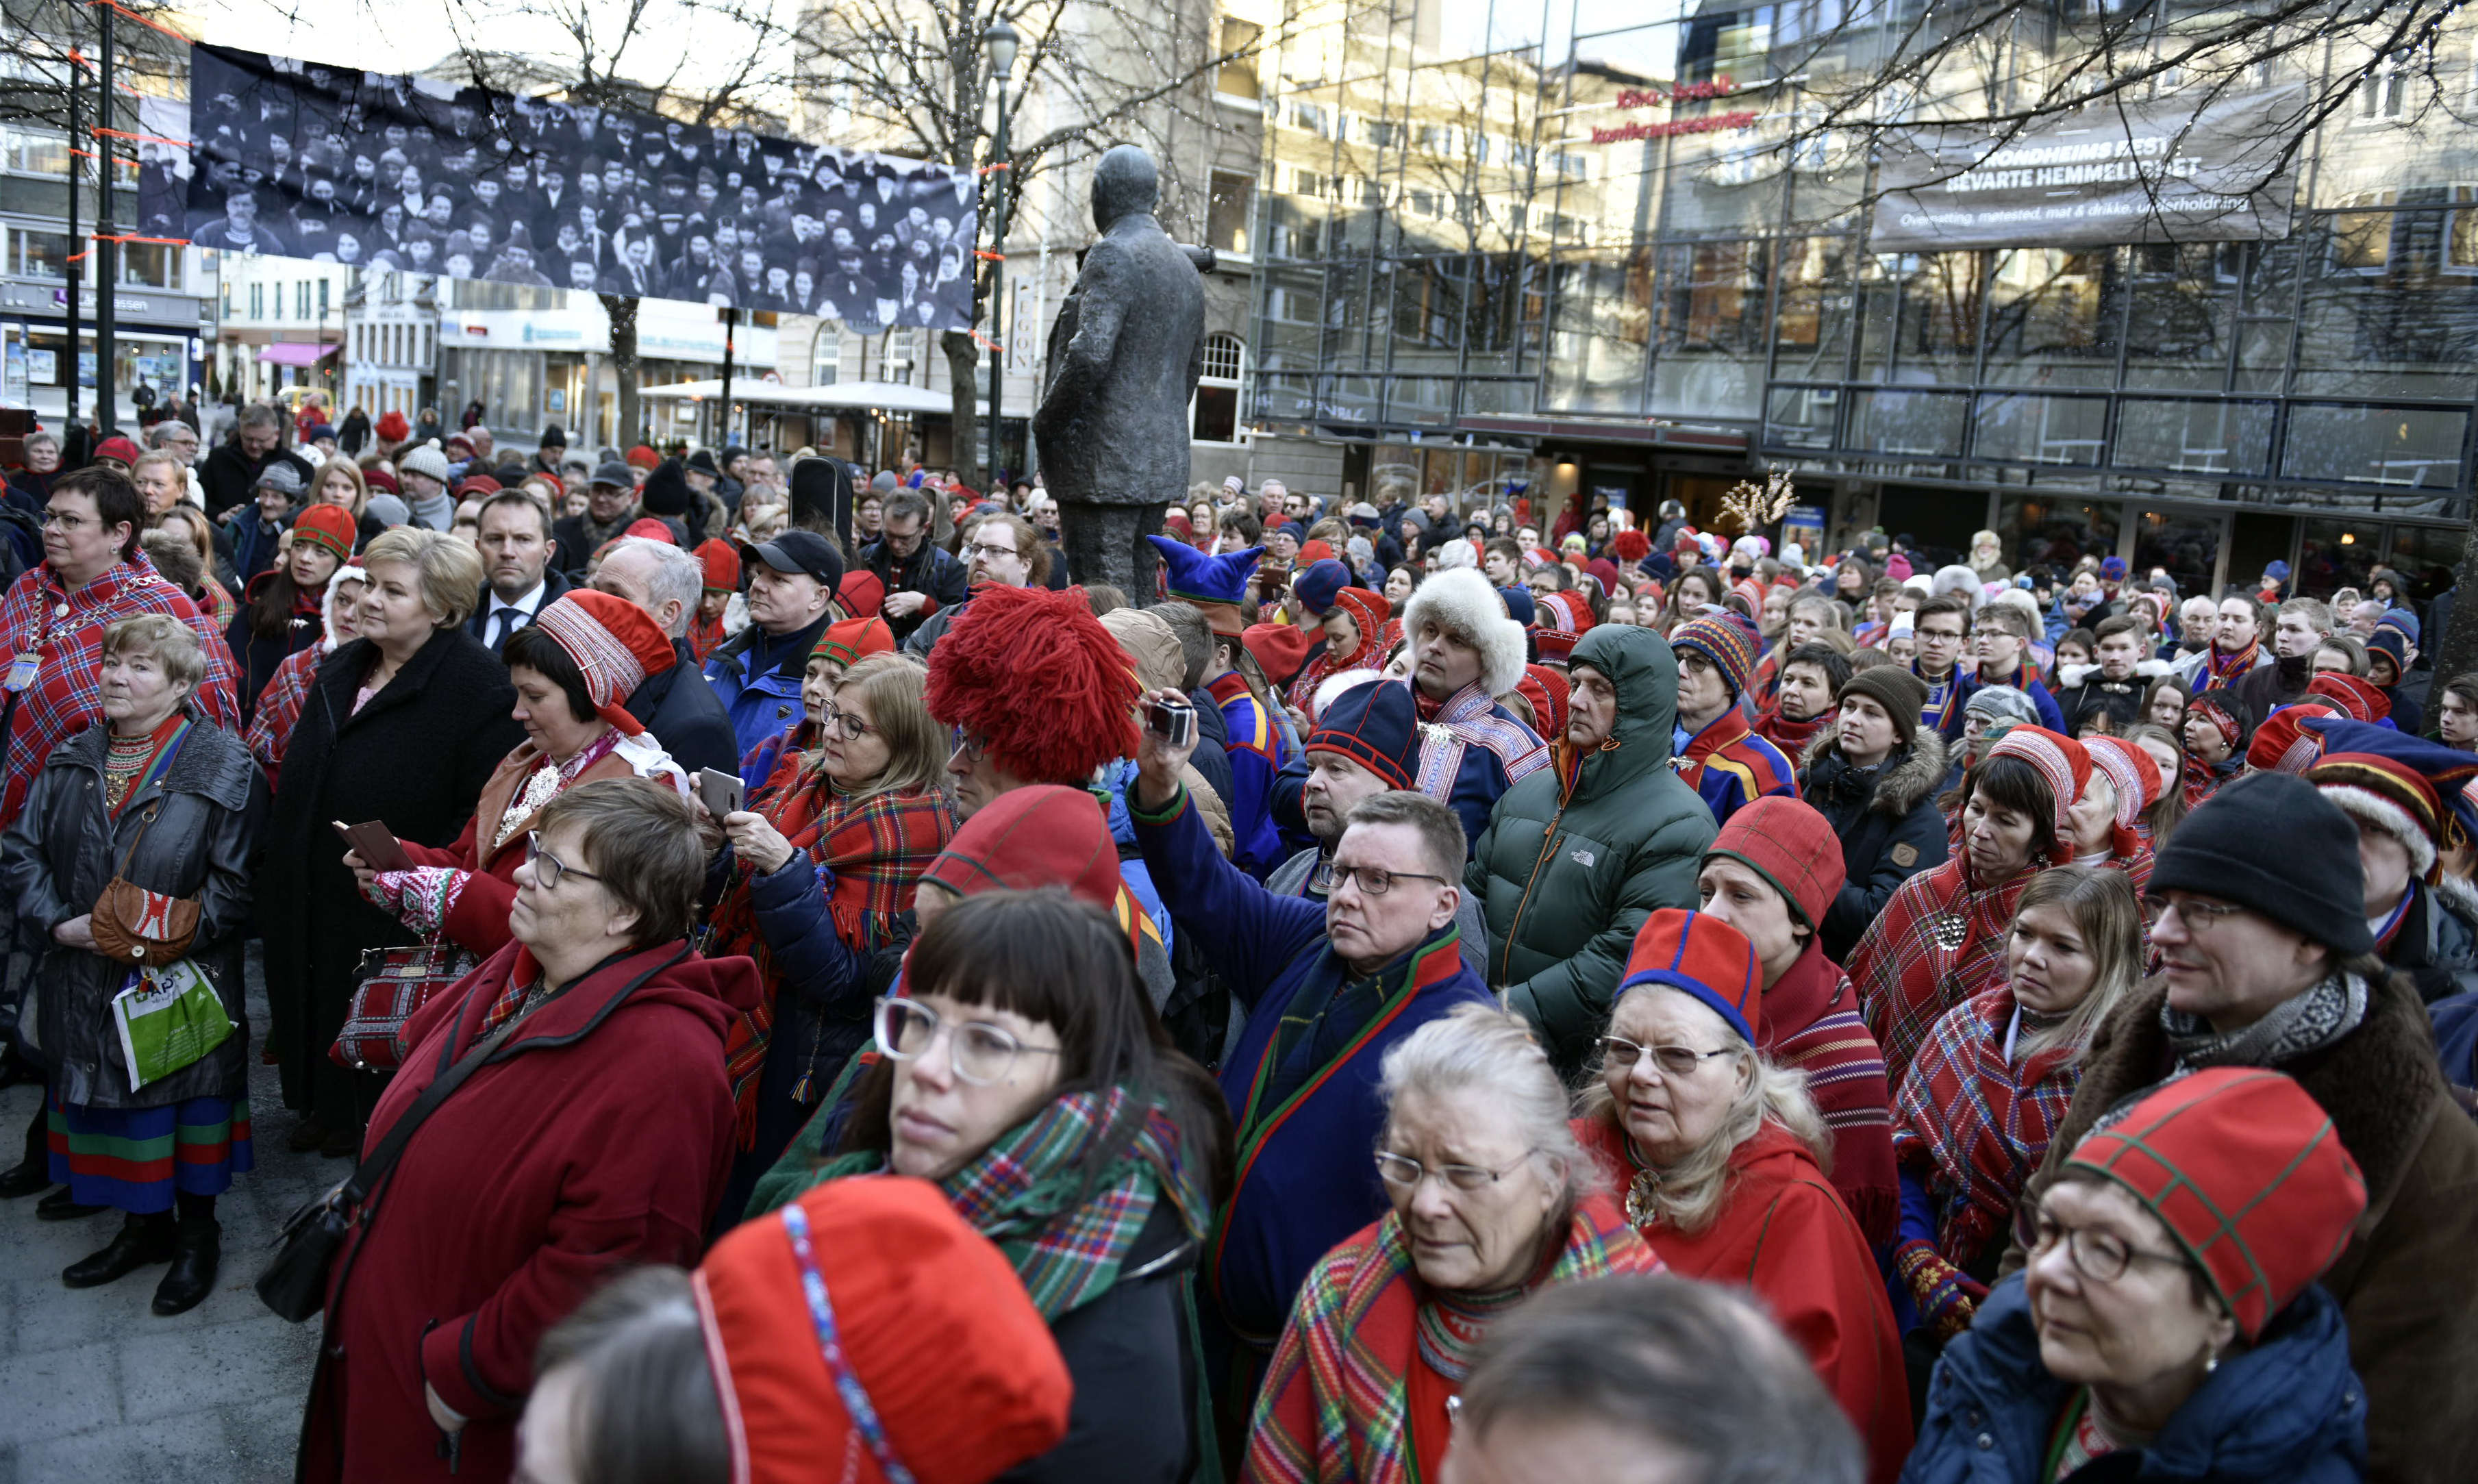 The centennial events in Trondheim, Norway, started with a meeting outside the United Methodist Church celebrating the actual site of the first Sami congress. The event was hosted by Sami youth organizations and attended by Norwegian Prime Minister Erna Solberg. Photo by Karl Anders Ellingsen.